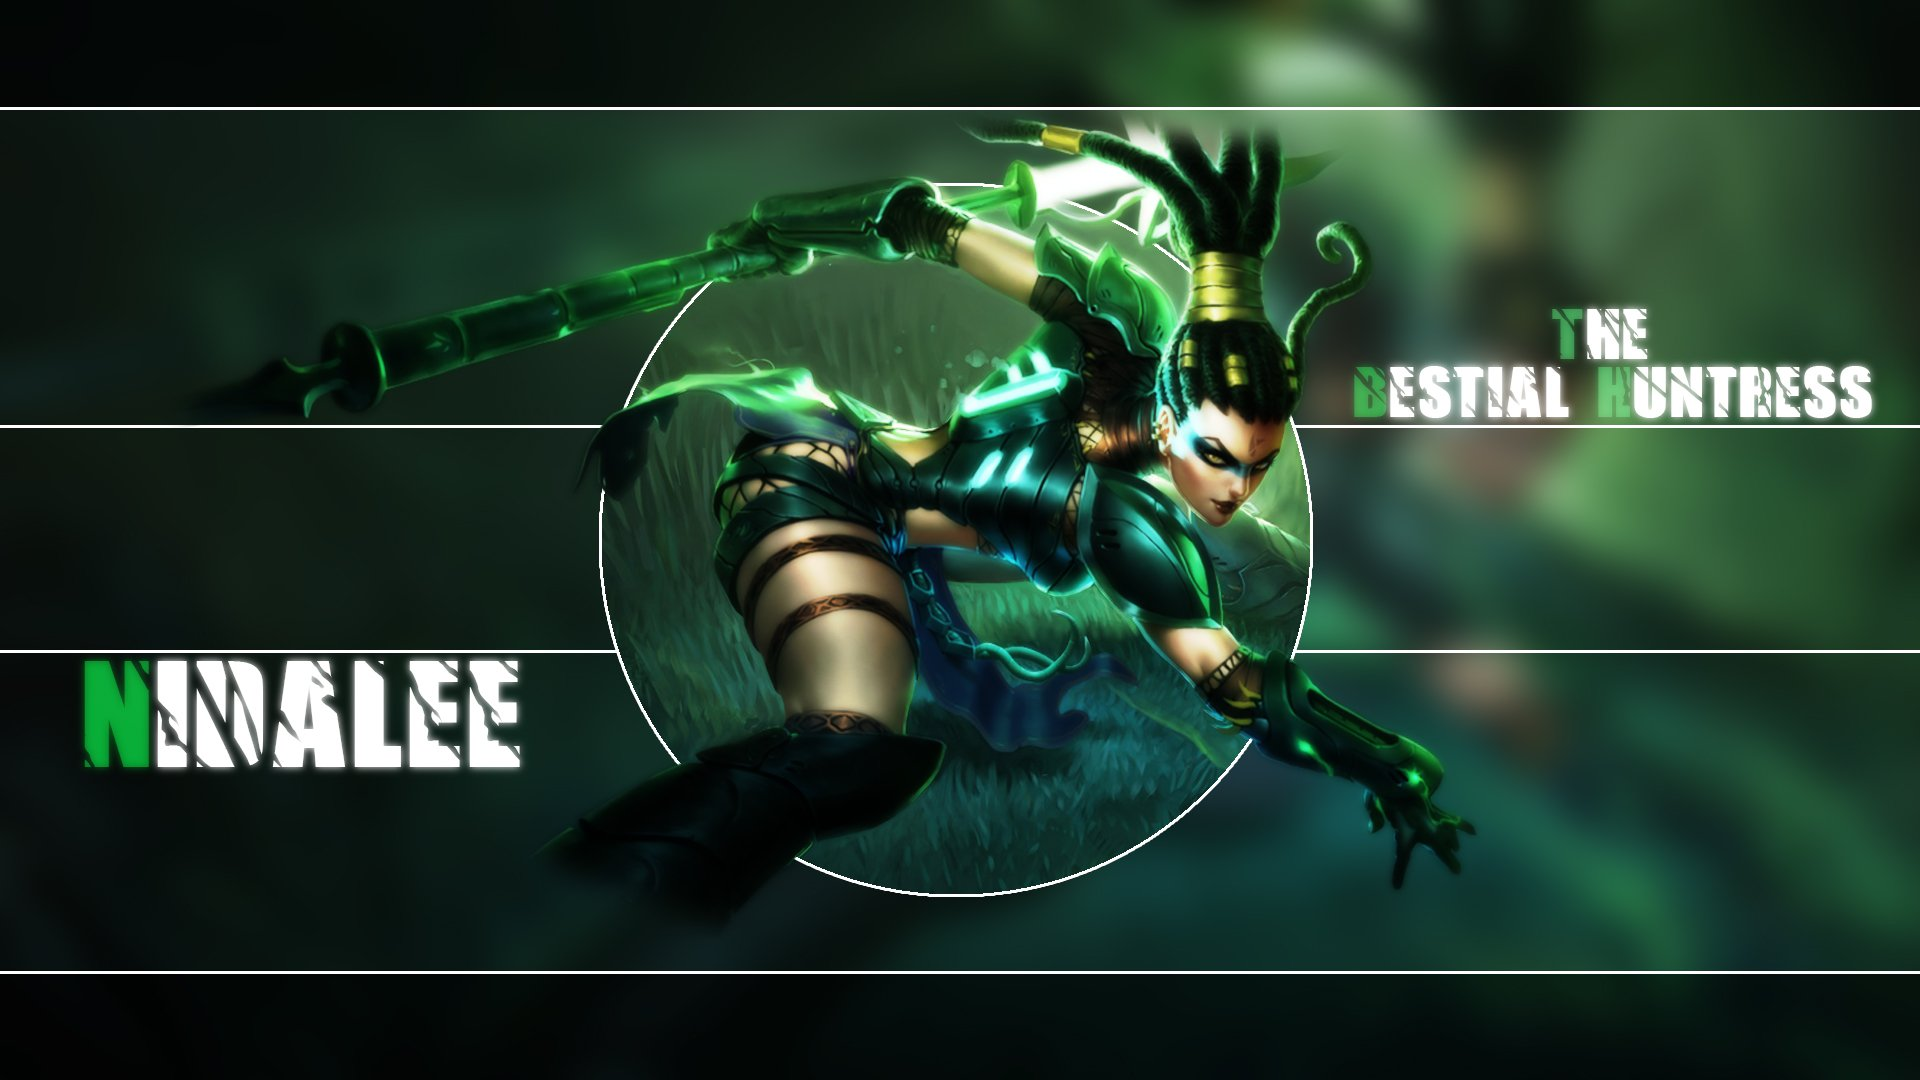 Headhunter Nidalee Wallpaper Headhunter nid 1920x1080